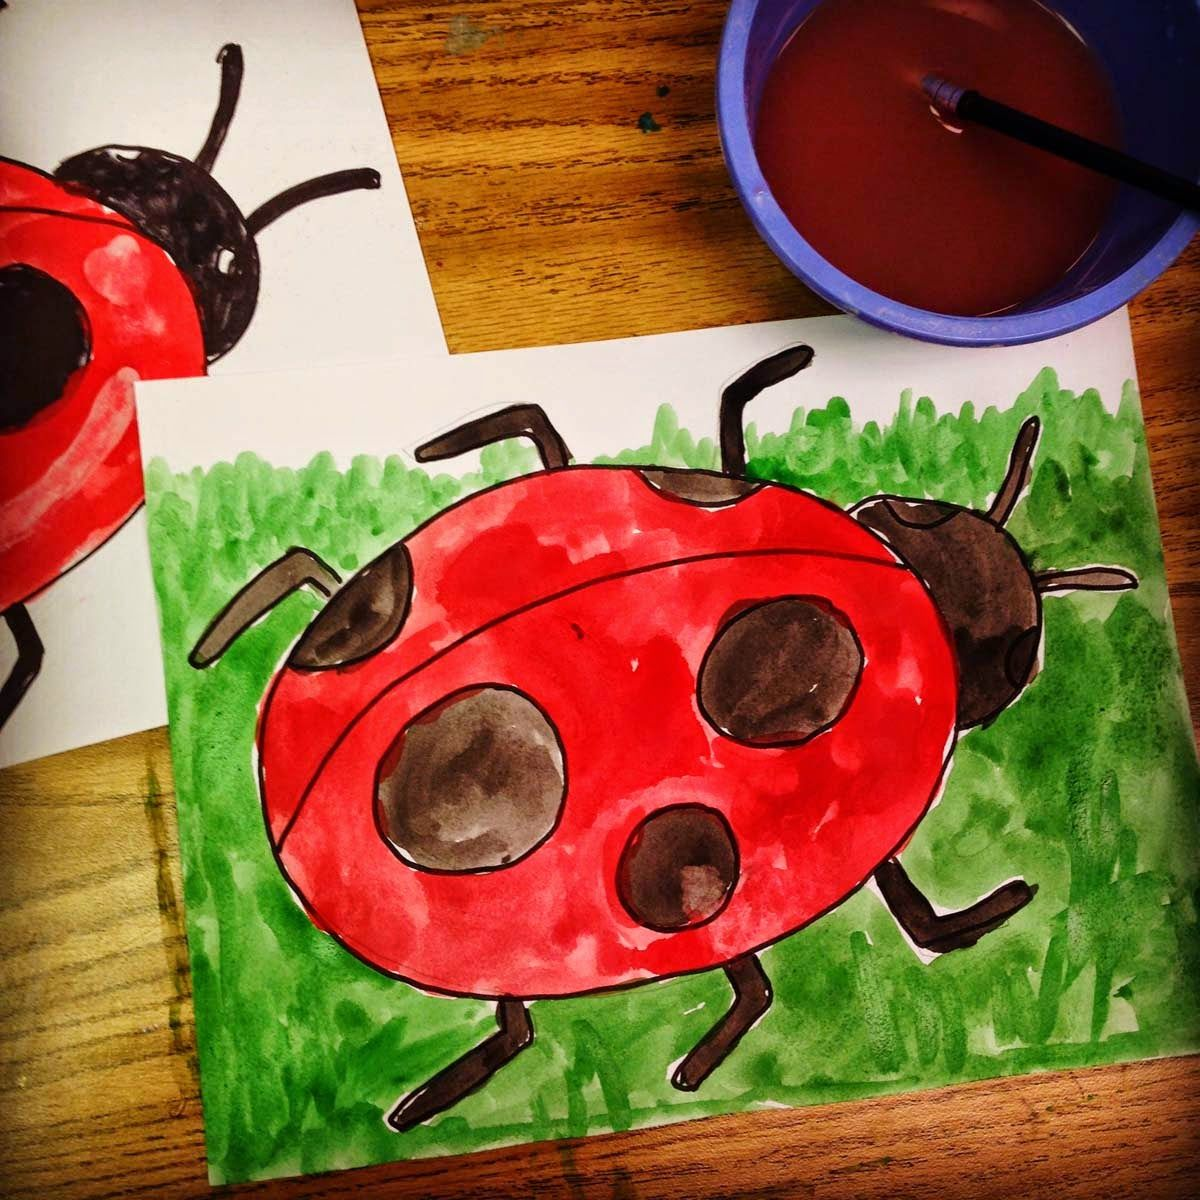 Diy Cupcake Holders With Images Ladybug Art Kids Art Projects Spring Art Projects